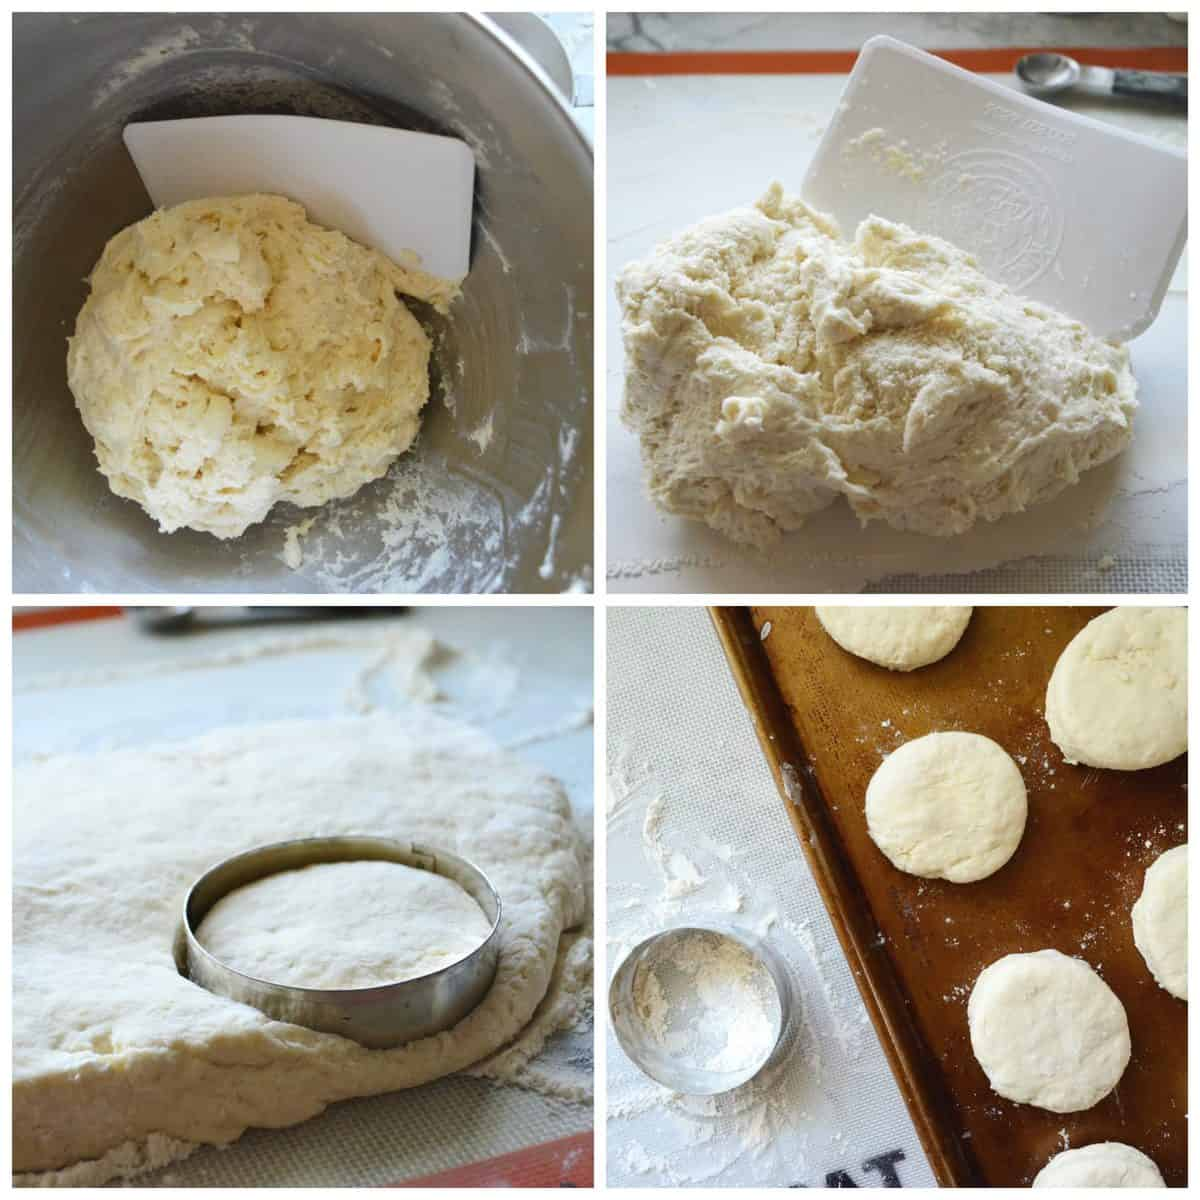 Four process shots of dough being scraped out of a bowl, cut, and placed on baking sheet.